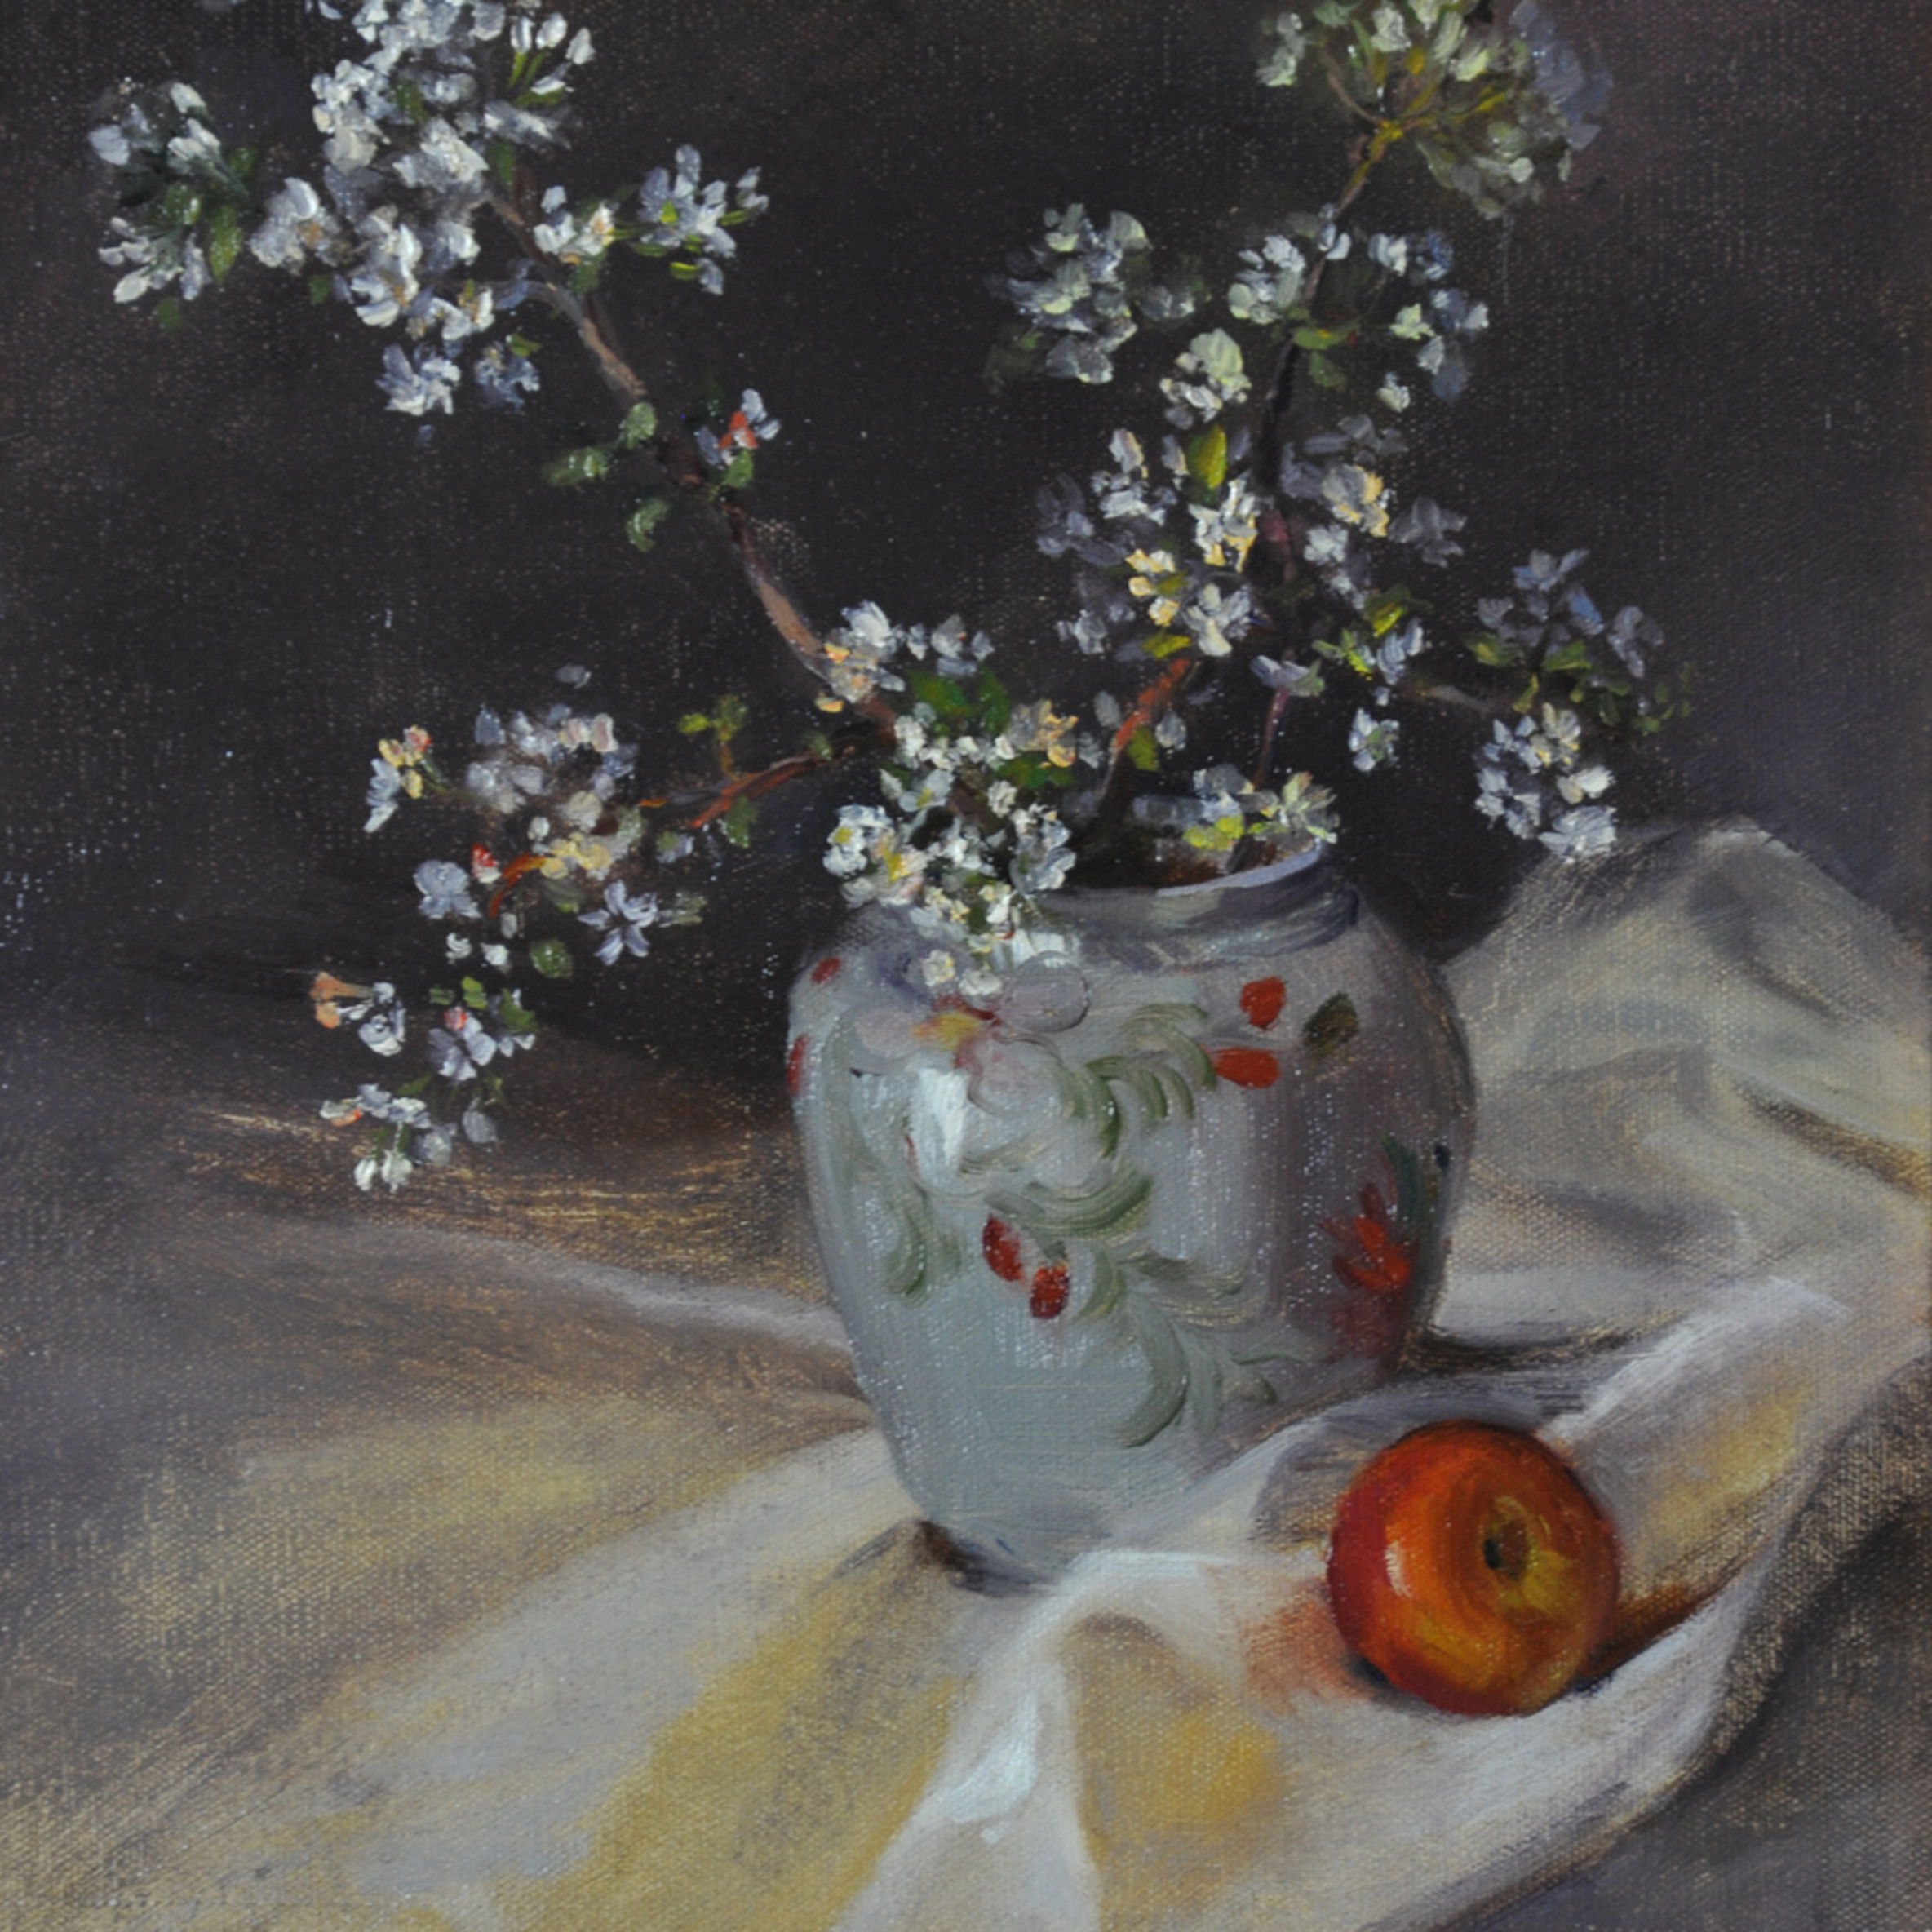 Apple blossoms and apple 2 print mkmkr1